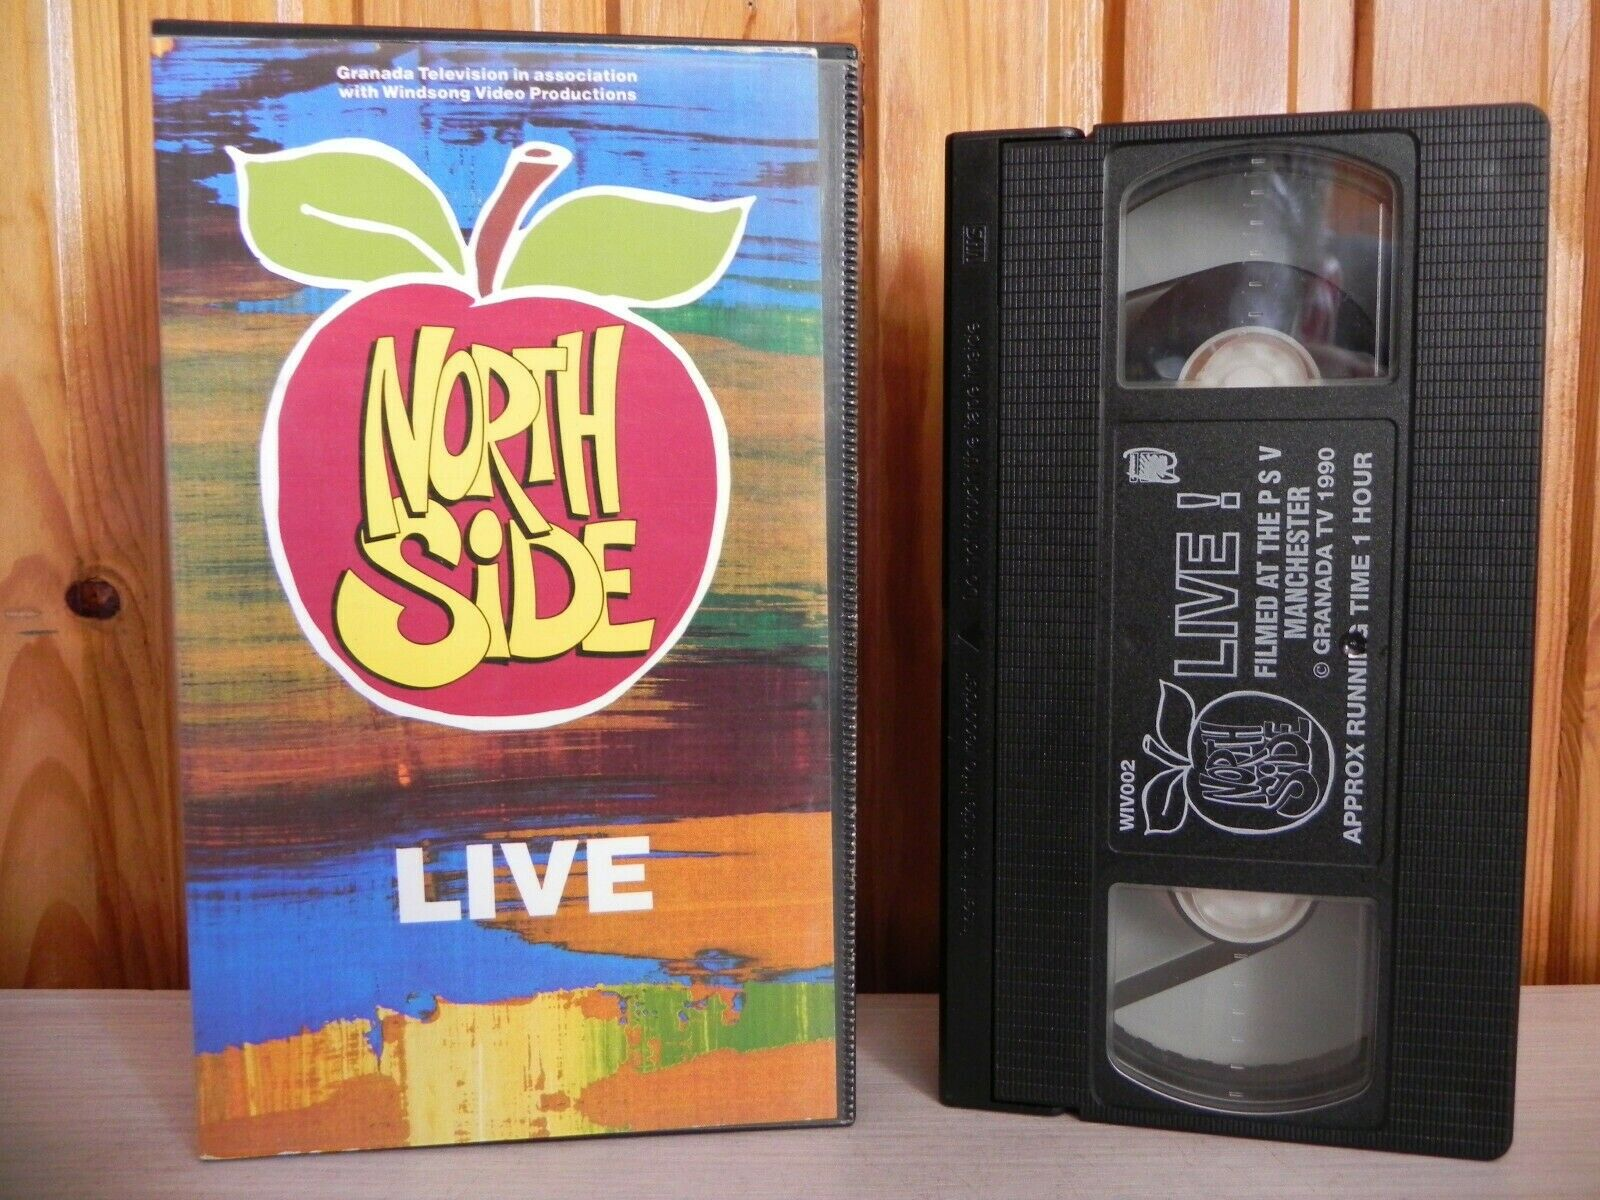 North Side: LIVE - Live Performance - PSV Club Manchester 8th October 1990 - VHS